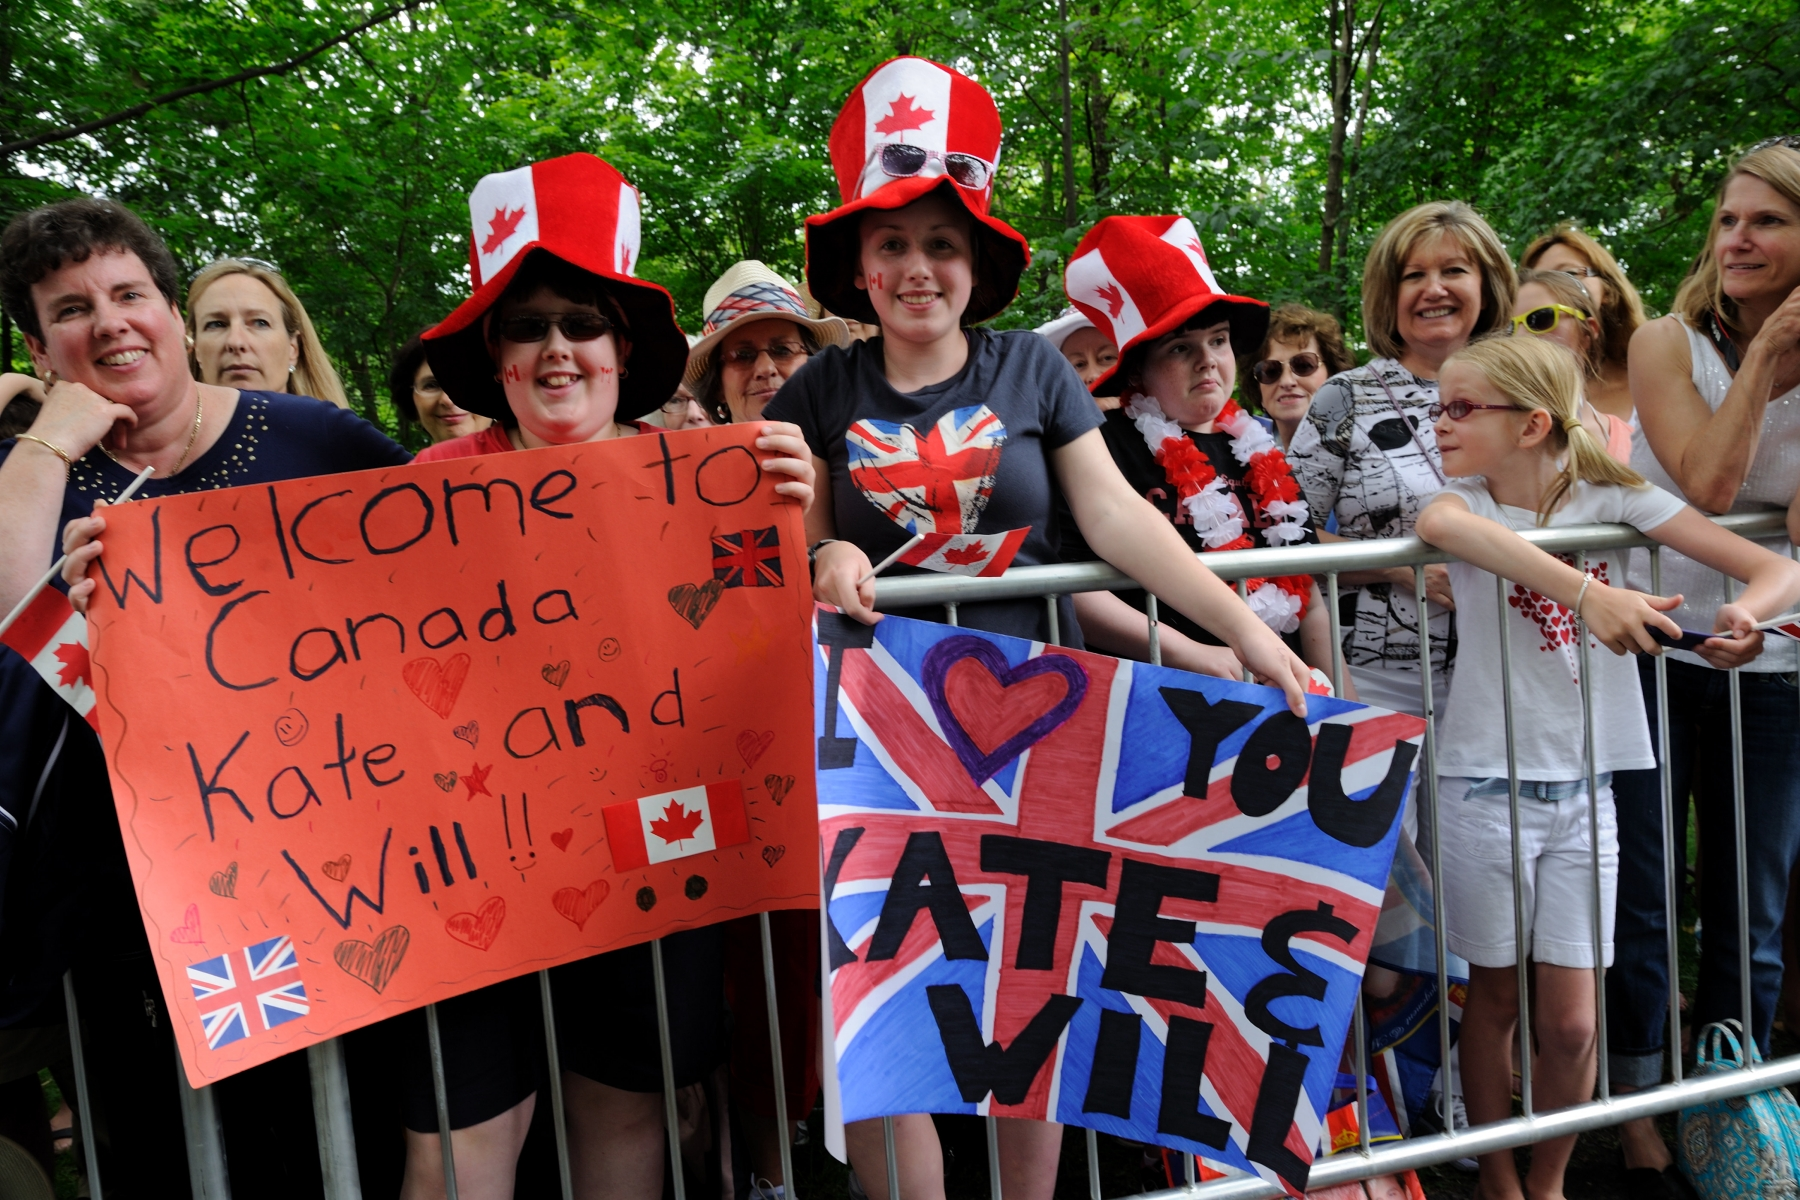 Canadians from all ages created beautiful banners to welcome the Royal couple.